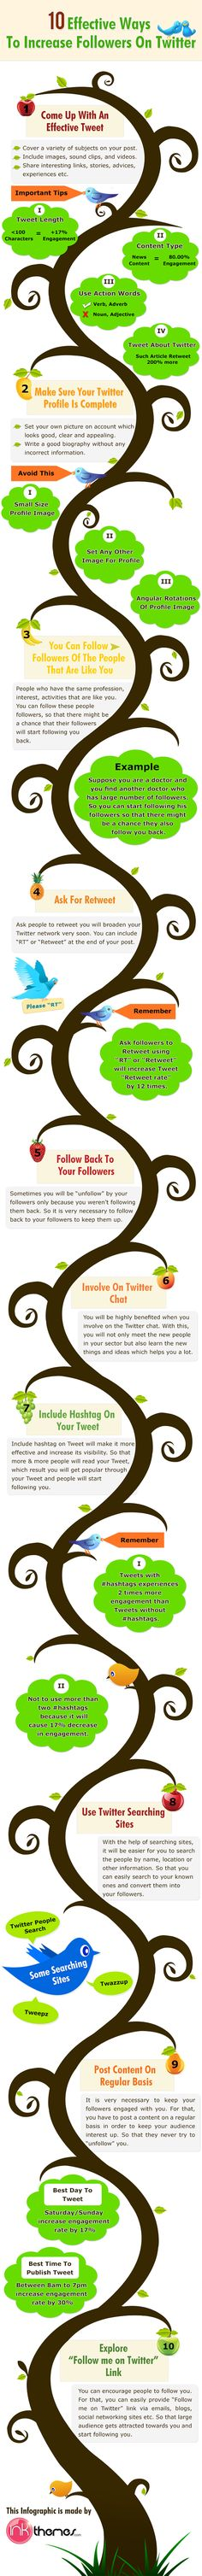 10 Effective Ways to Increase Twitter Followers and Build Your Business